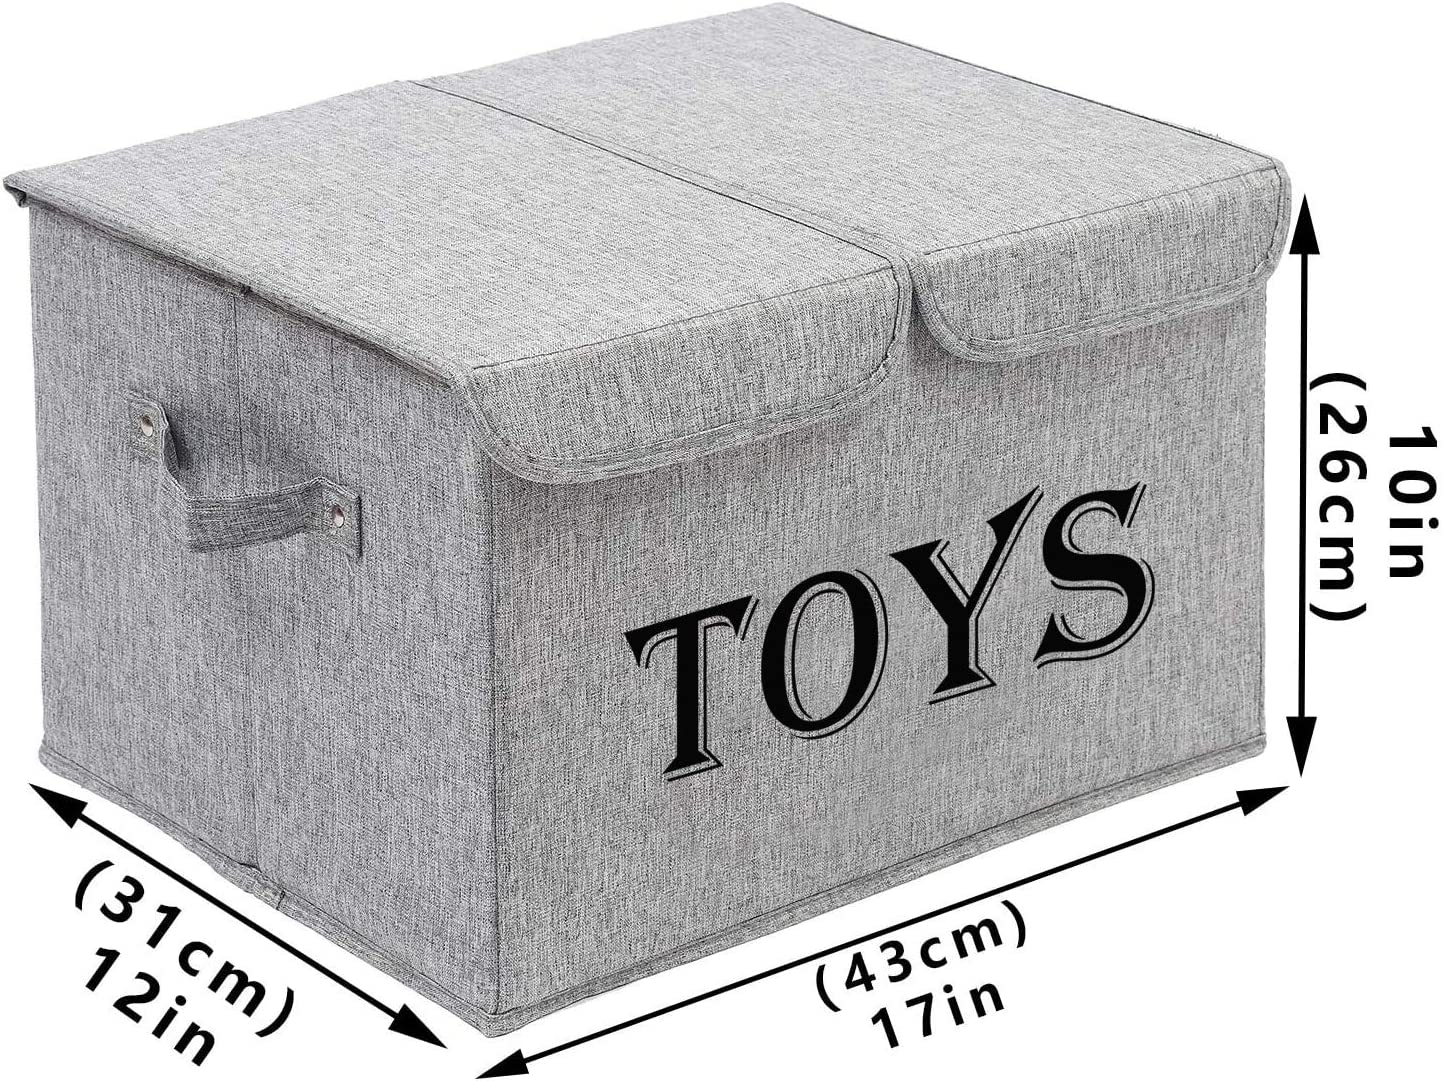 Gray Xbopetda Toy Storage Box for Baby Collapsible Toy Storage Box Linen Kids Toy Organizer with 2 Lids and Handles Toy Baskets for Home//Office//nursery